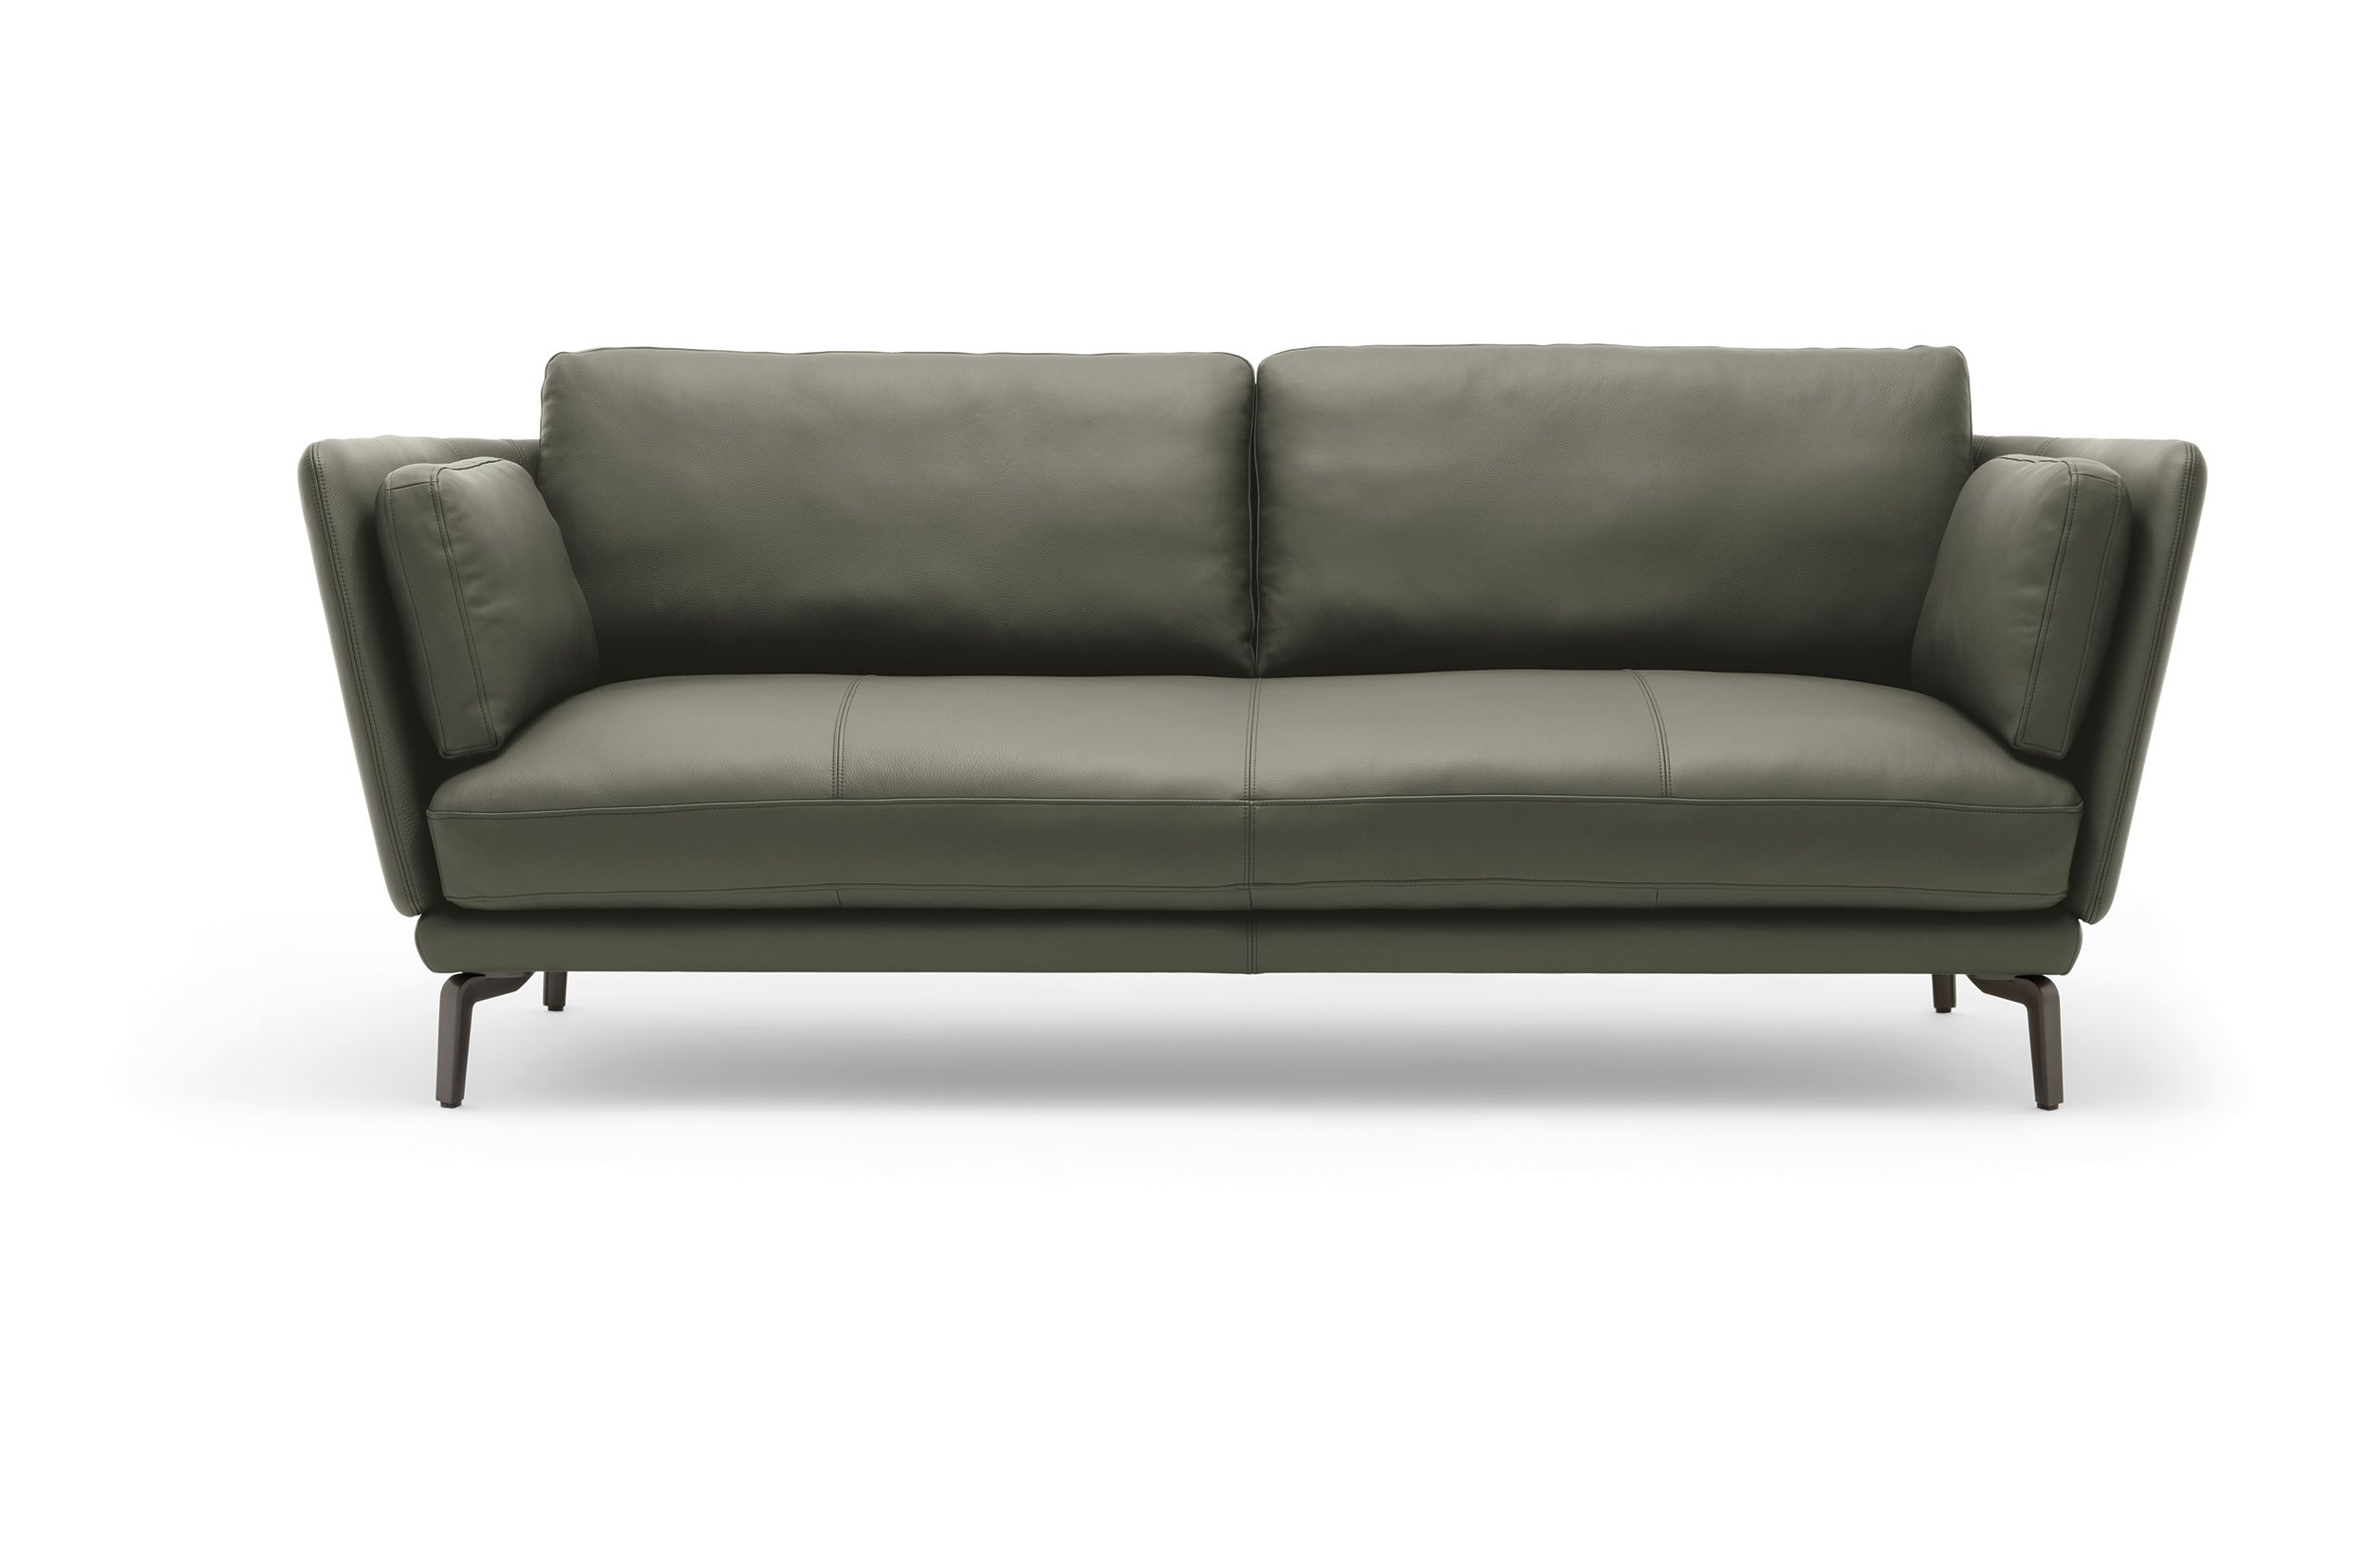 The new Rolf Benz RONDO sofa is also available in leather